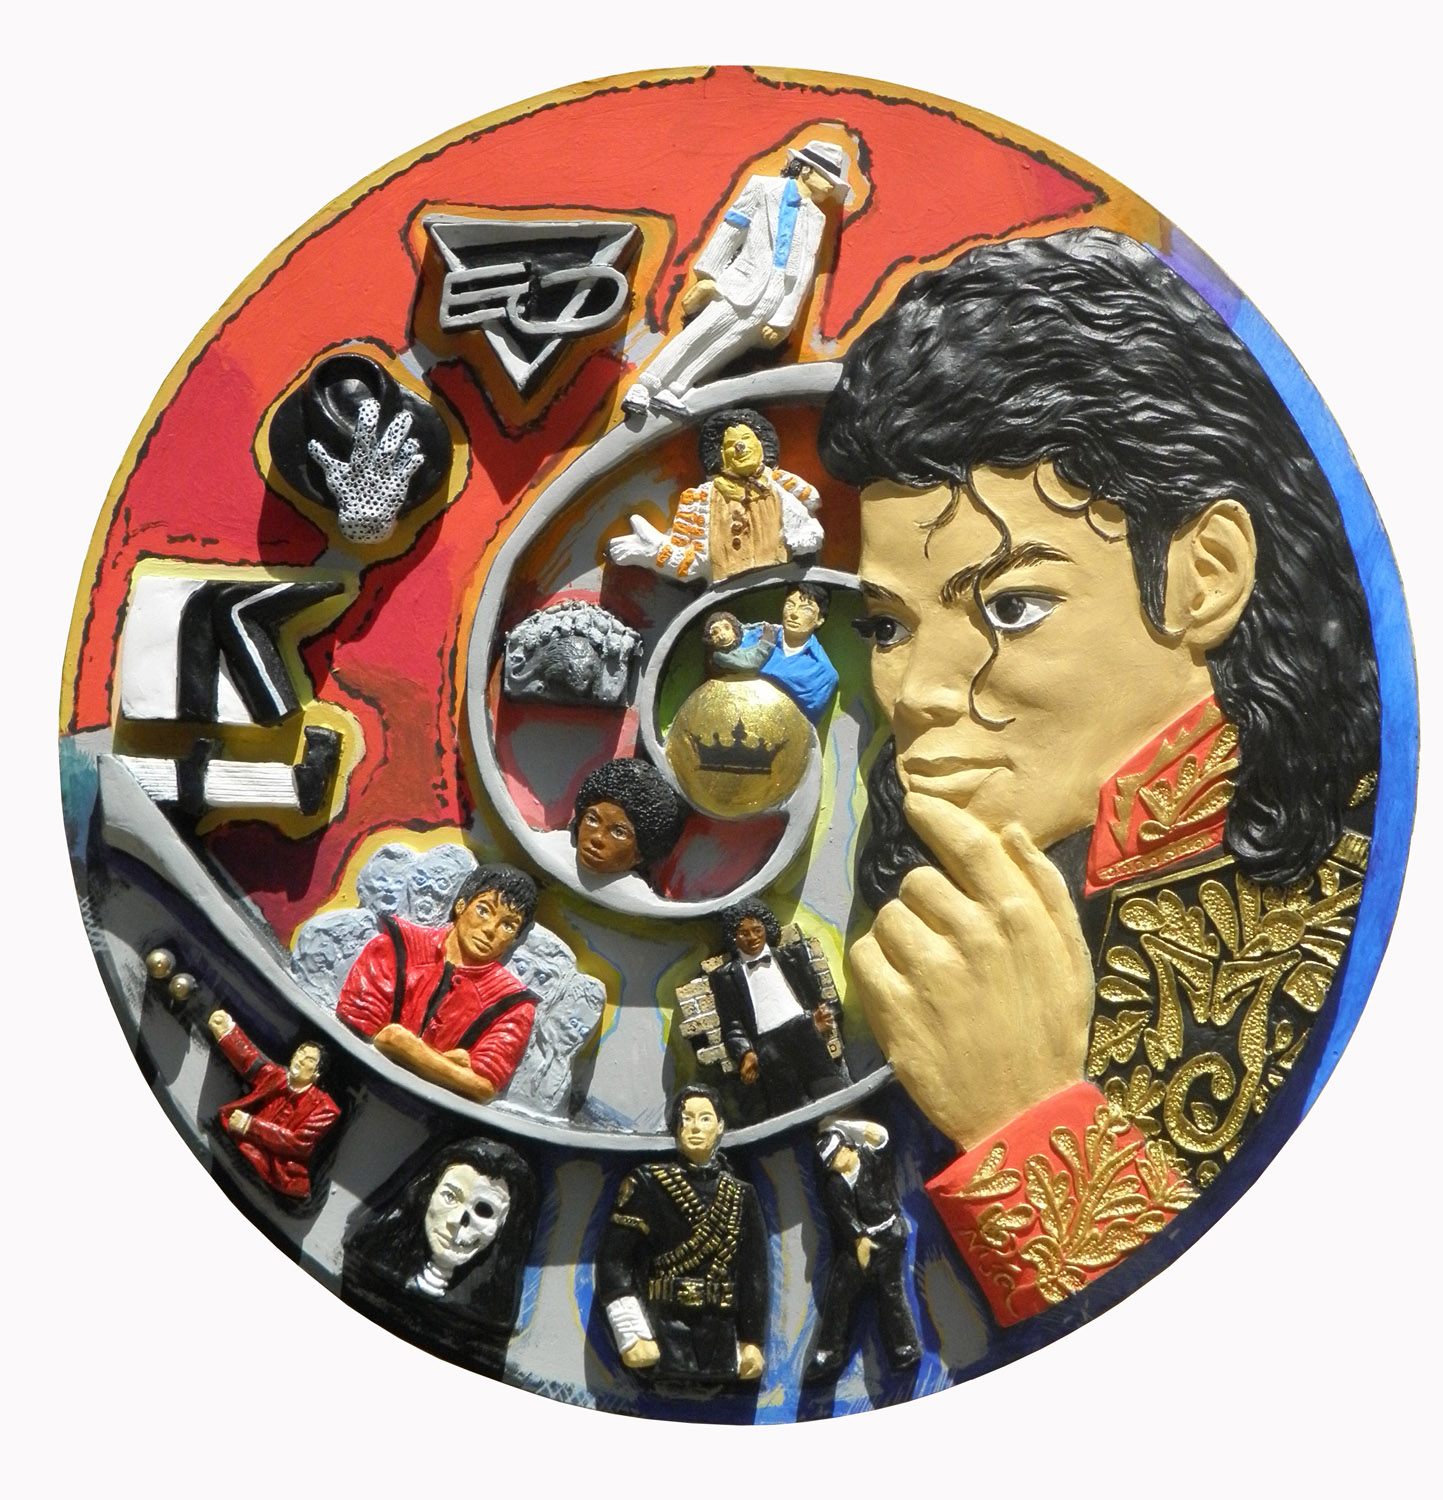 King-of-Pop-ceramic-plate